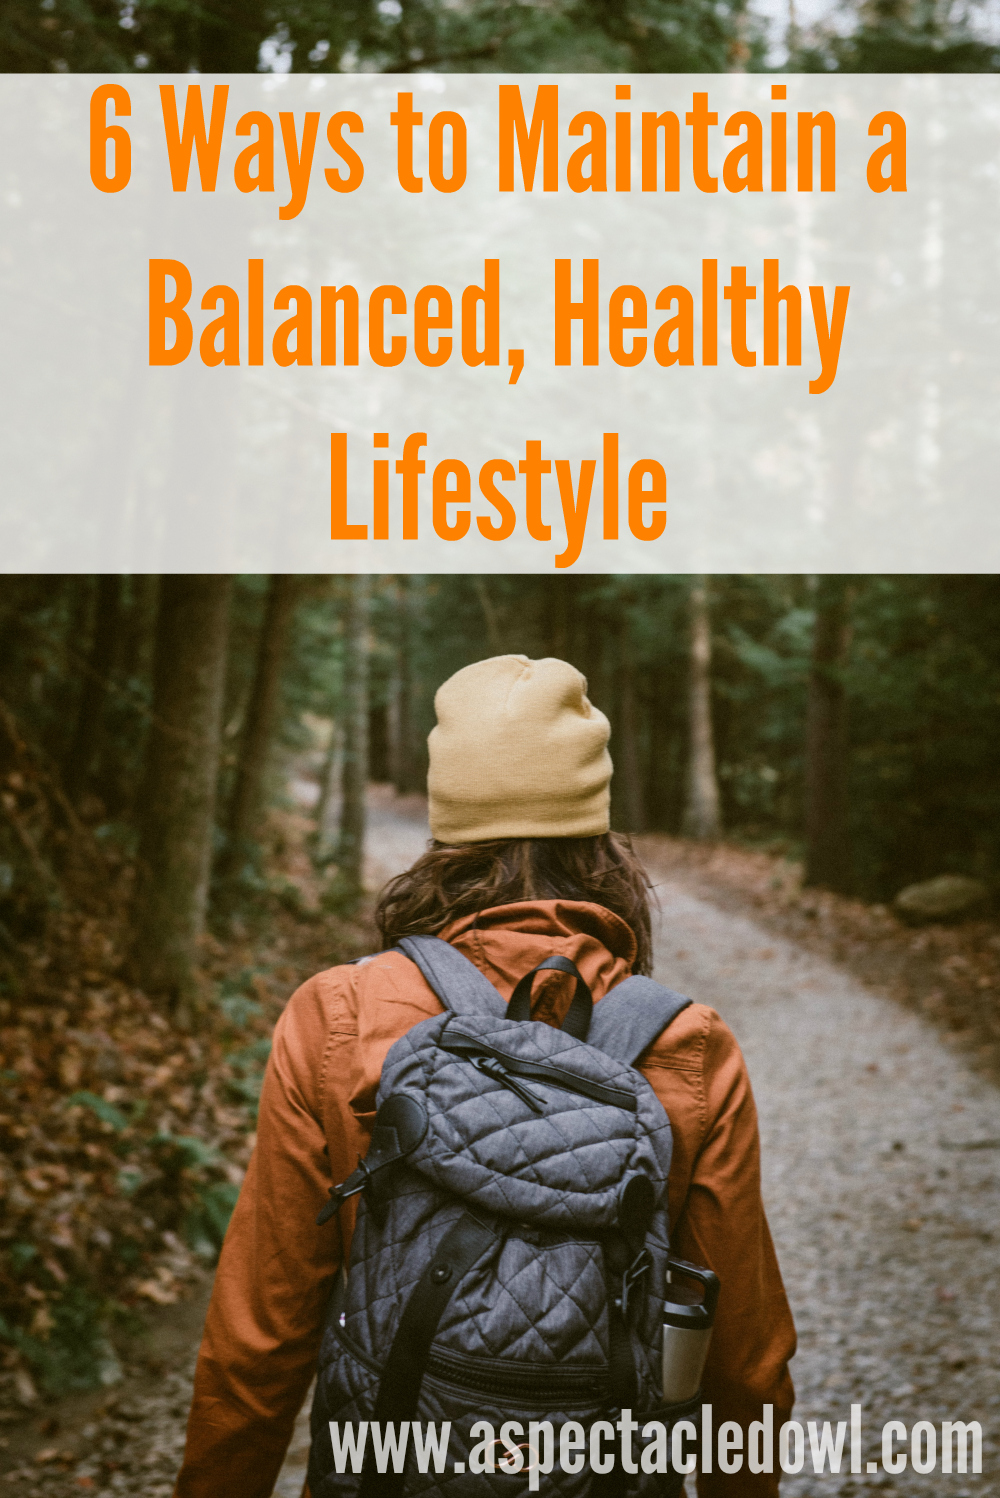 6 Ways to Maintain a Balanced, Healthy Lifestyle